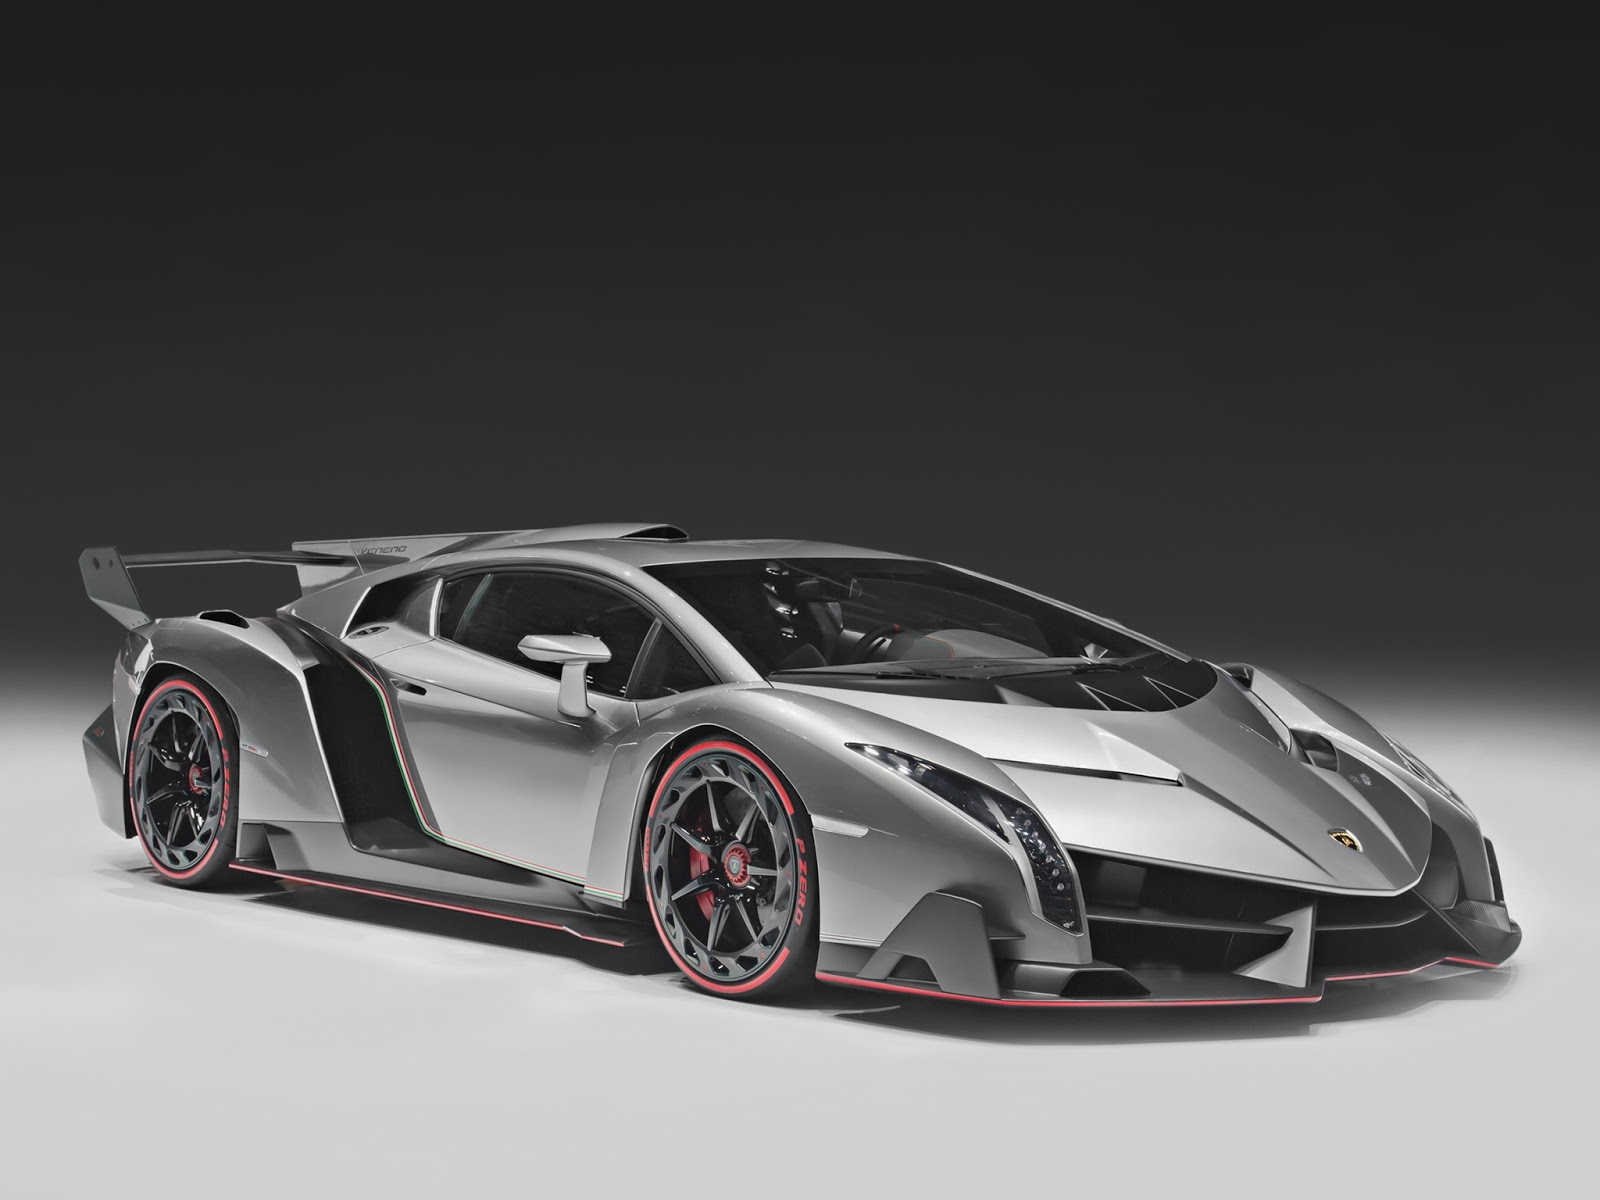 Lamborghini_Veneno_Top Cars 2015